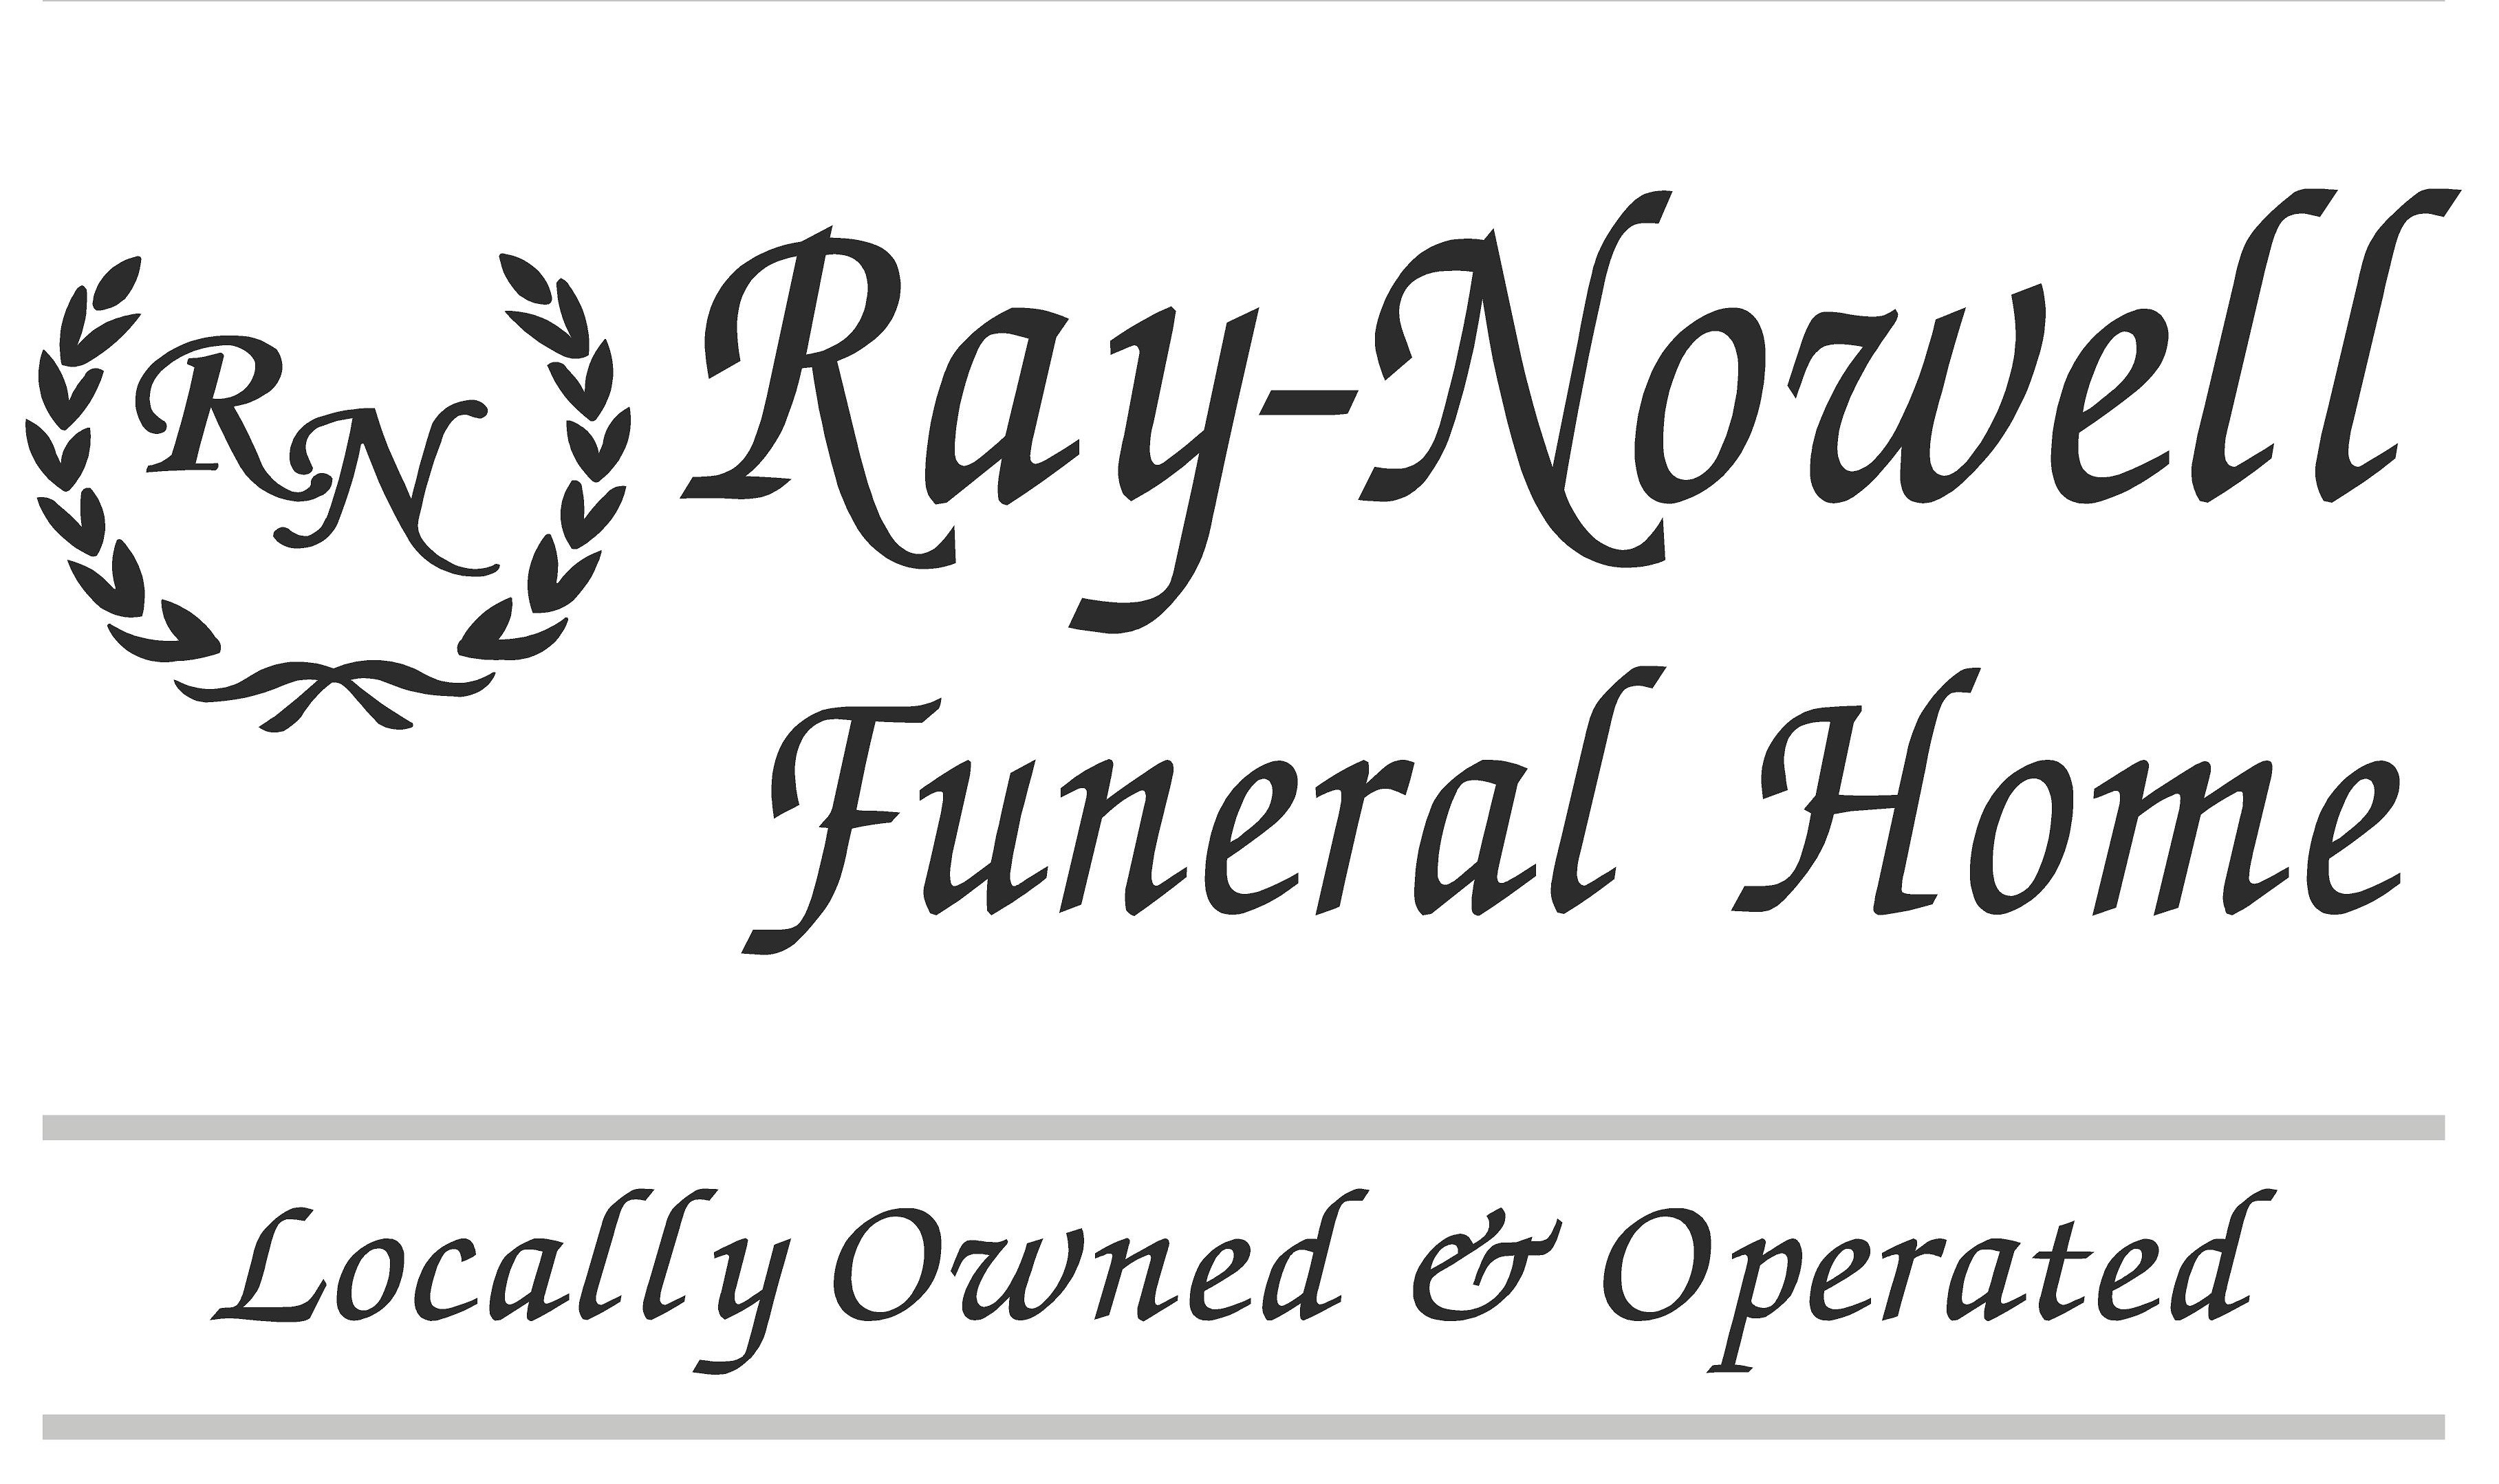 Ray-Nowell Funeral Home